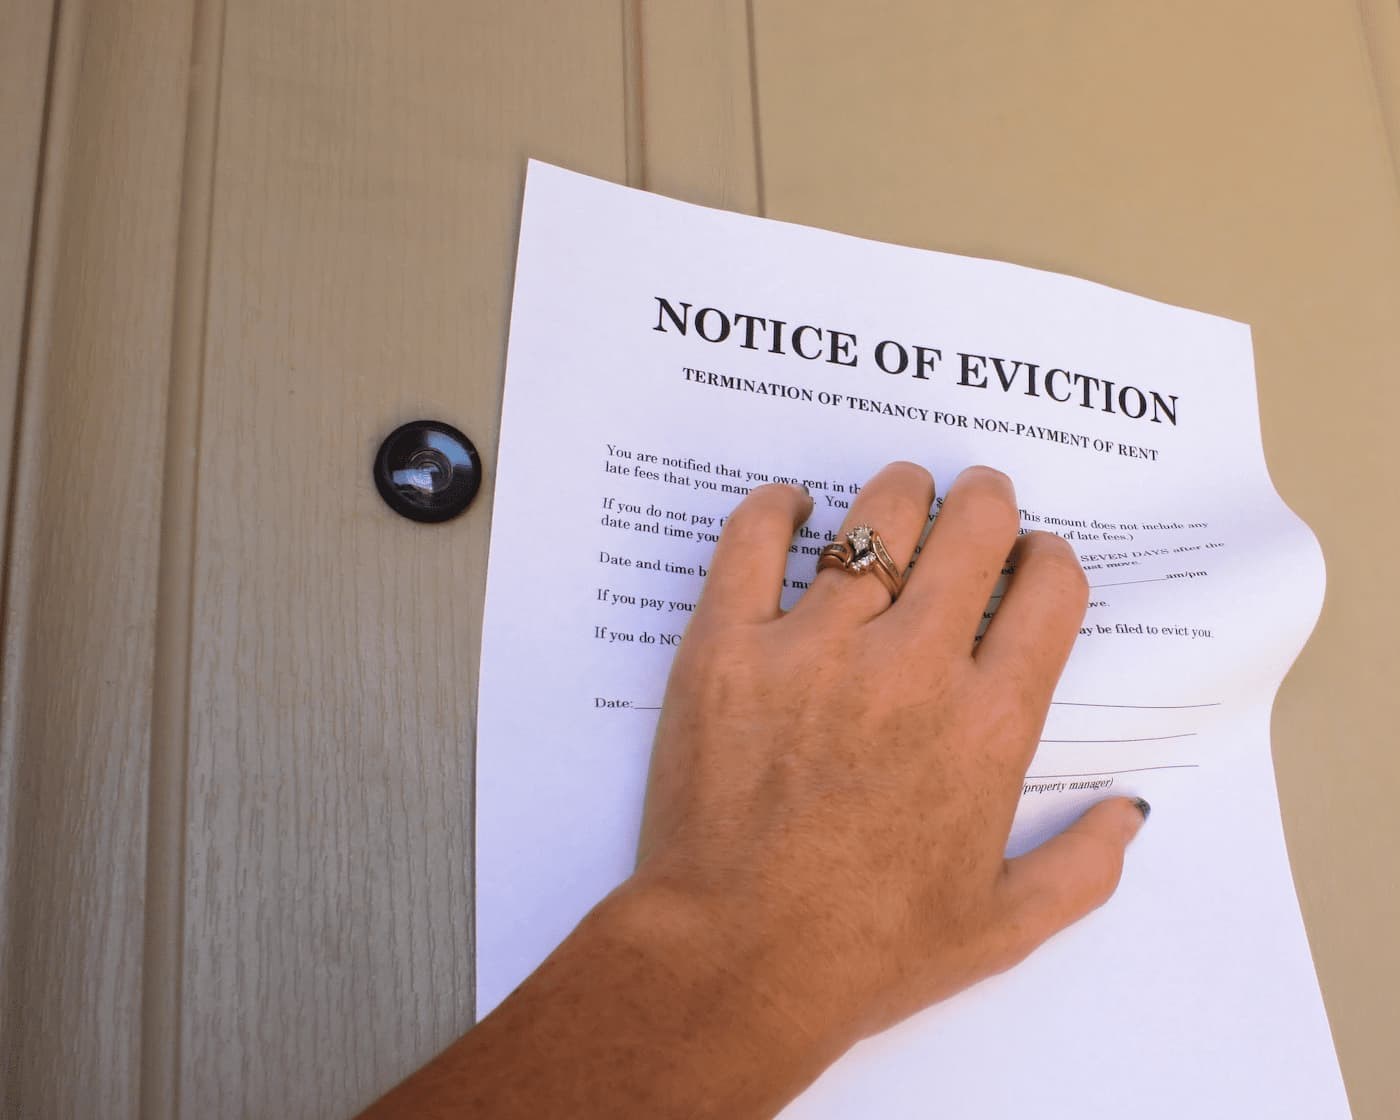 Notice of Eviction Tenant relief act